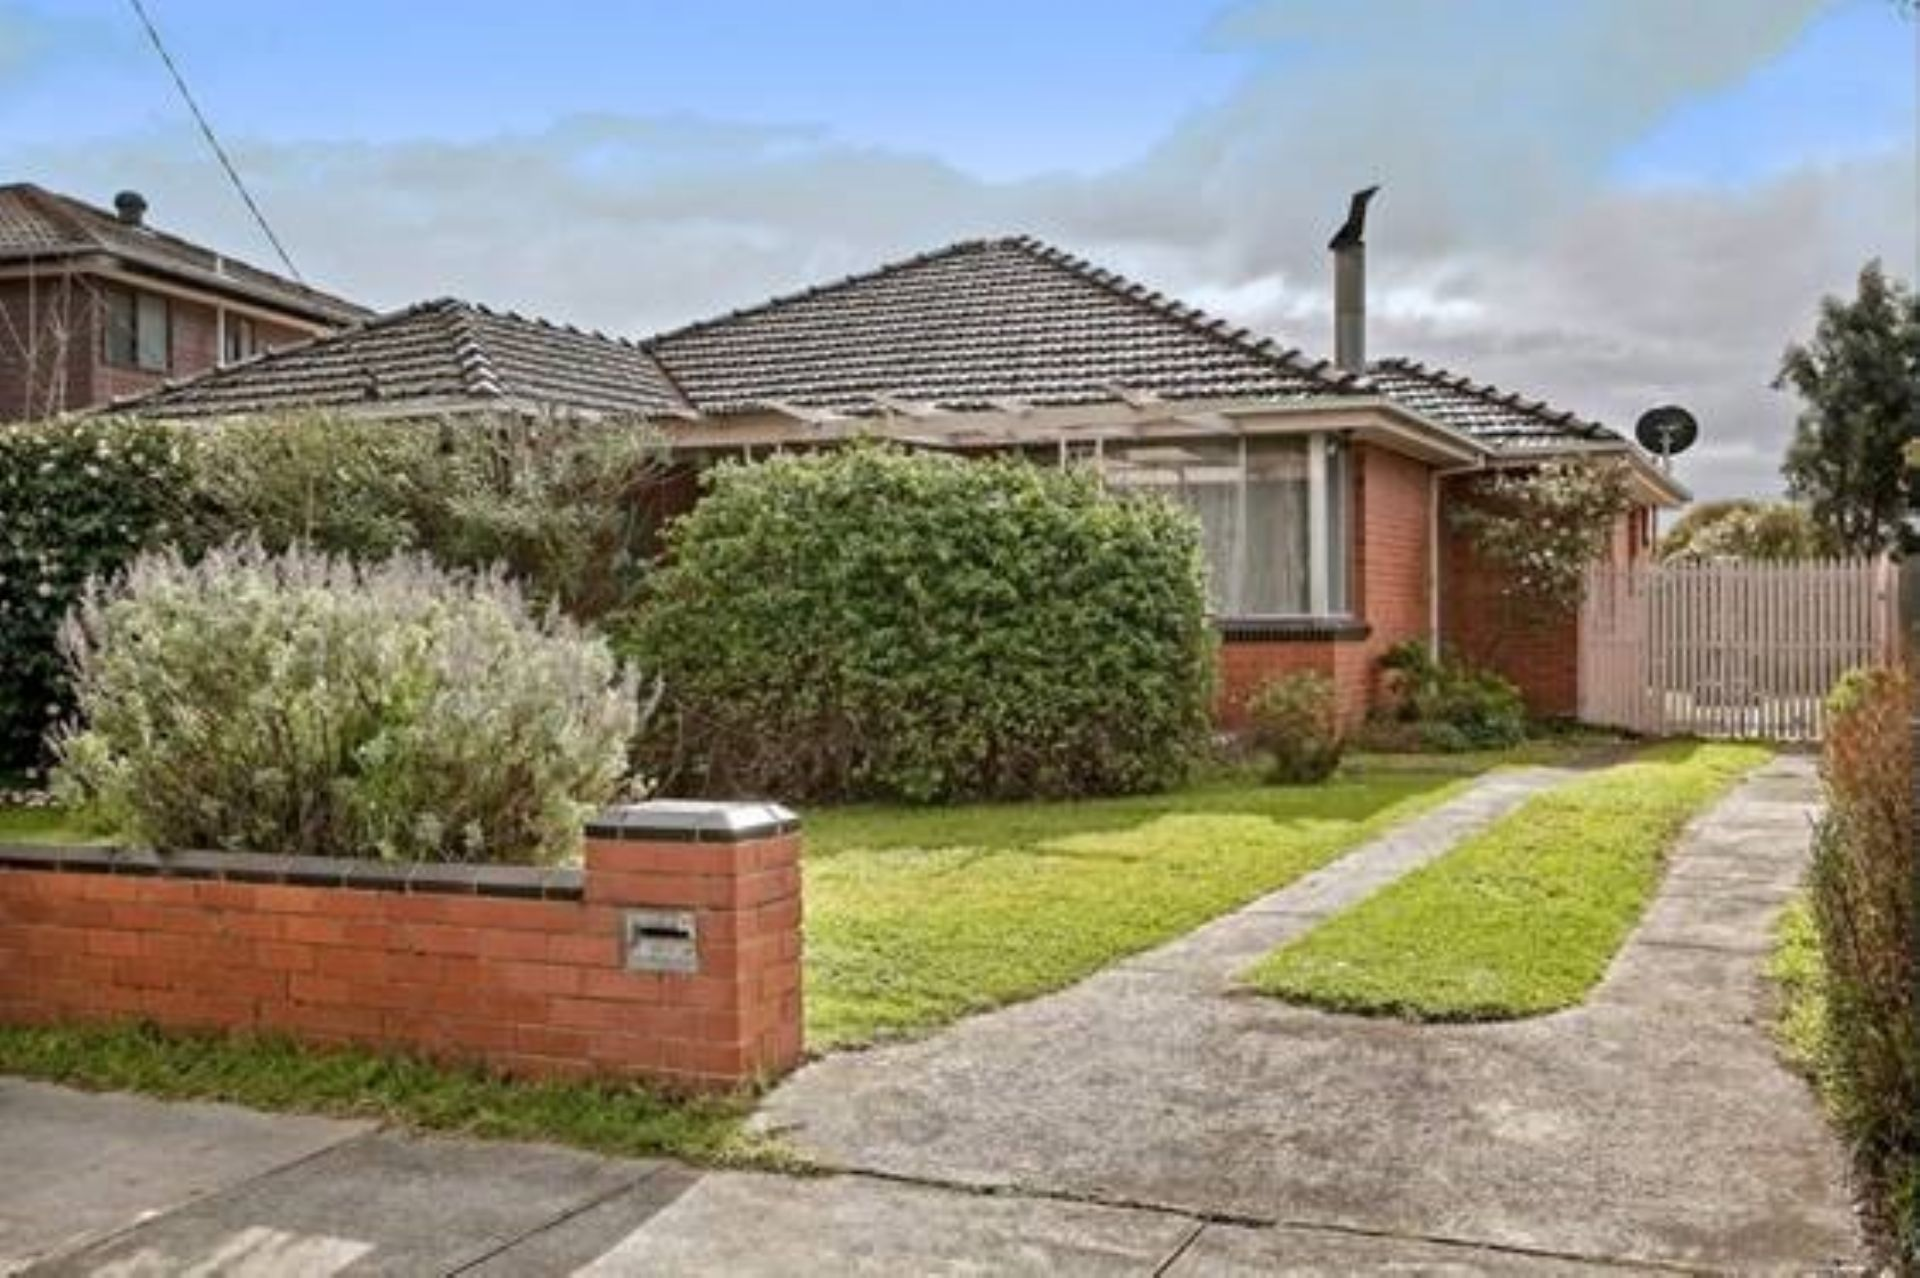 15 Jacana Avenue, FRANKSTON, VIC, 3199 - Image